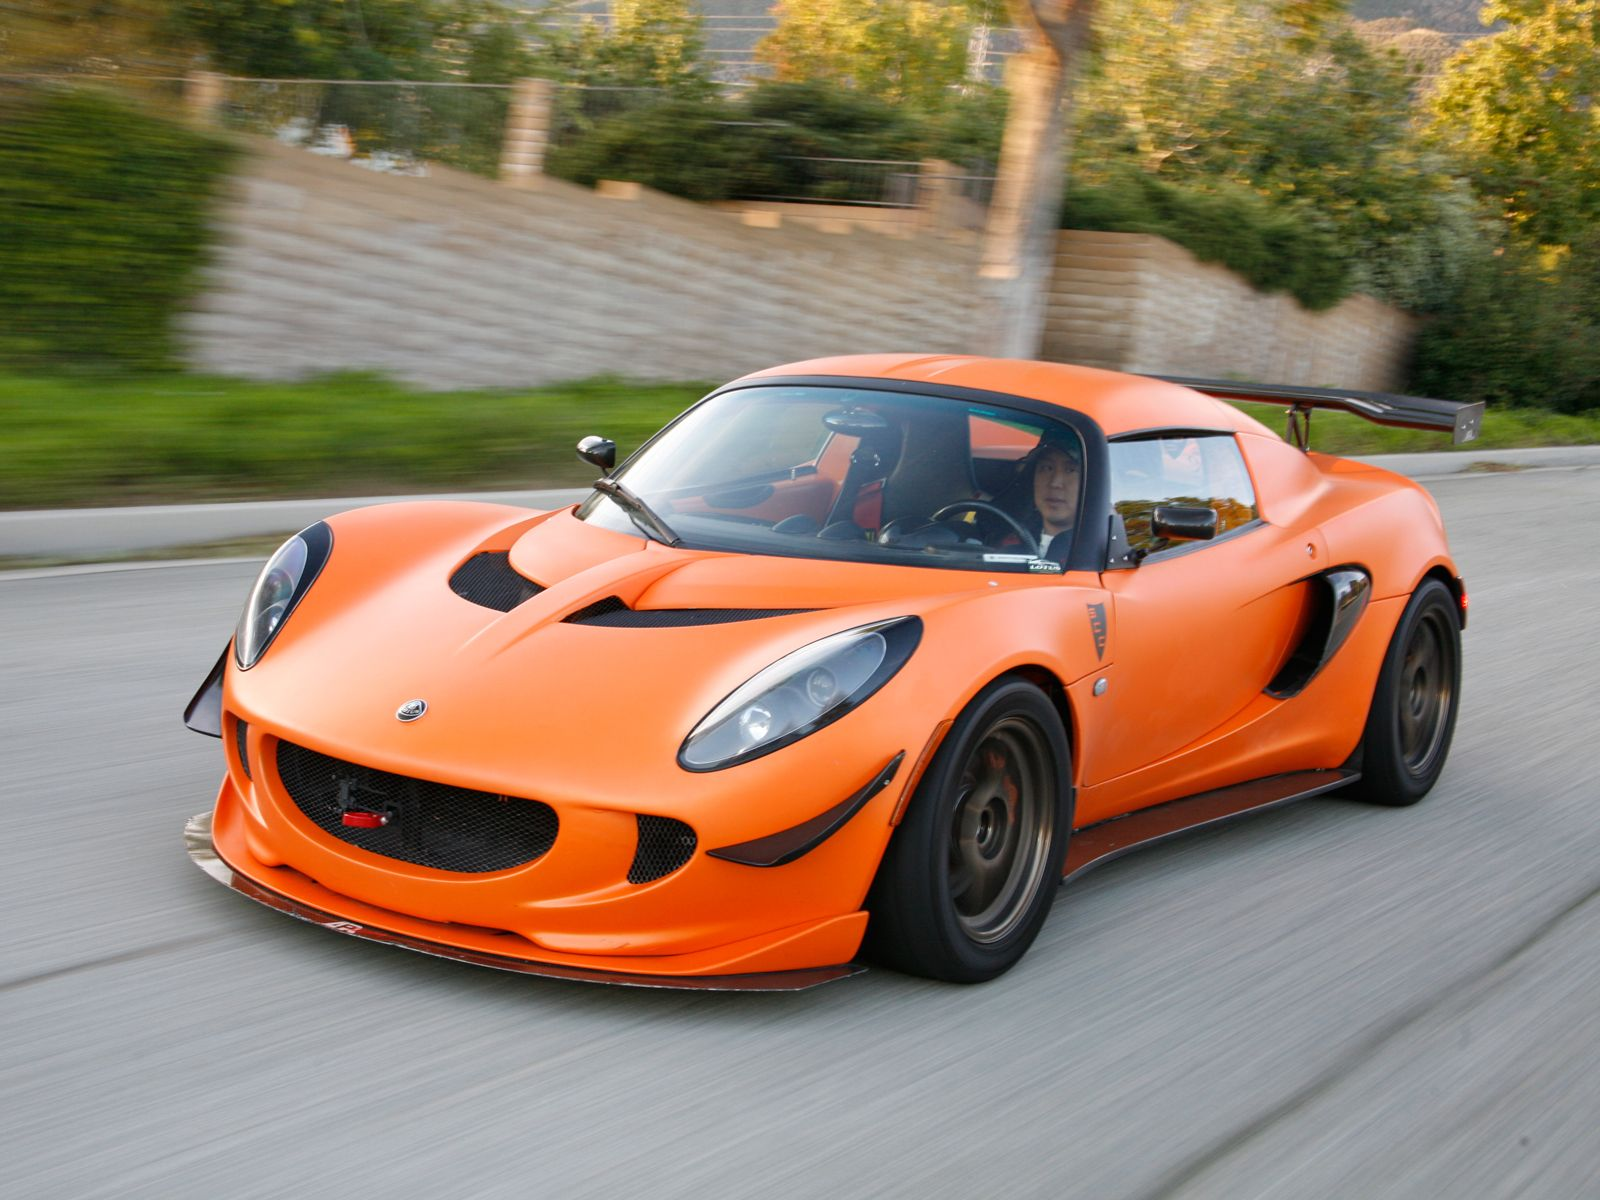 Photo 1 / 12 | 2005 Lotus Elise - Edward Park